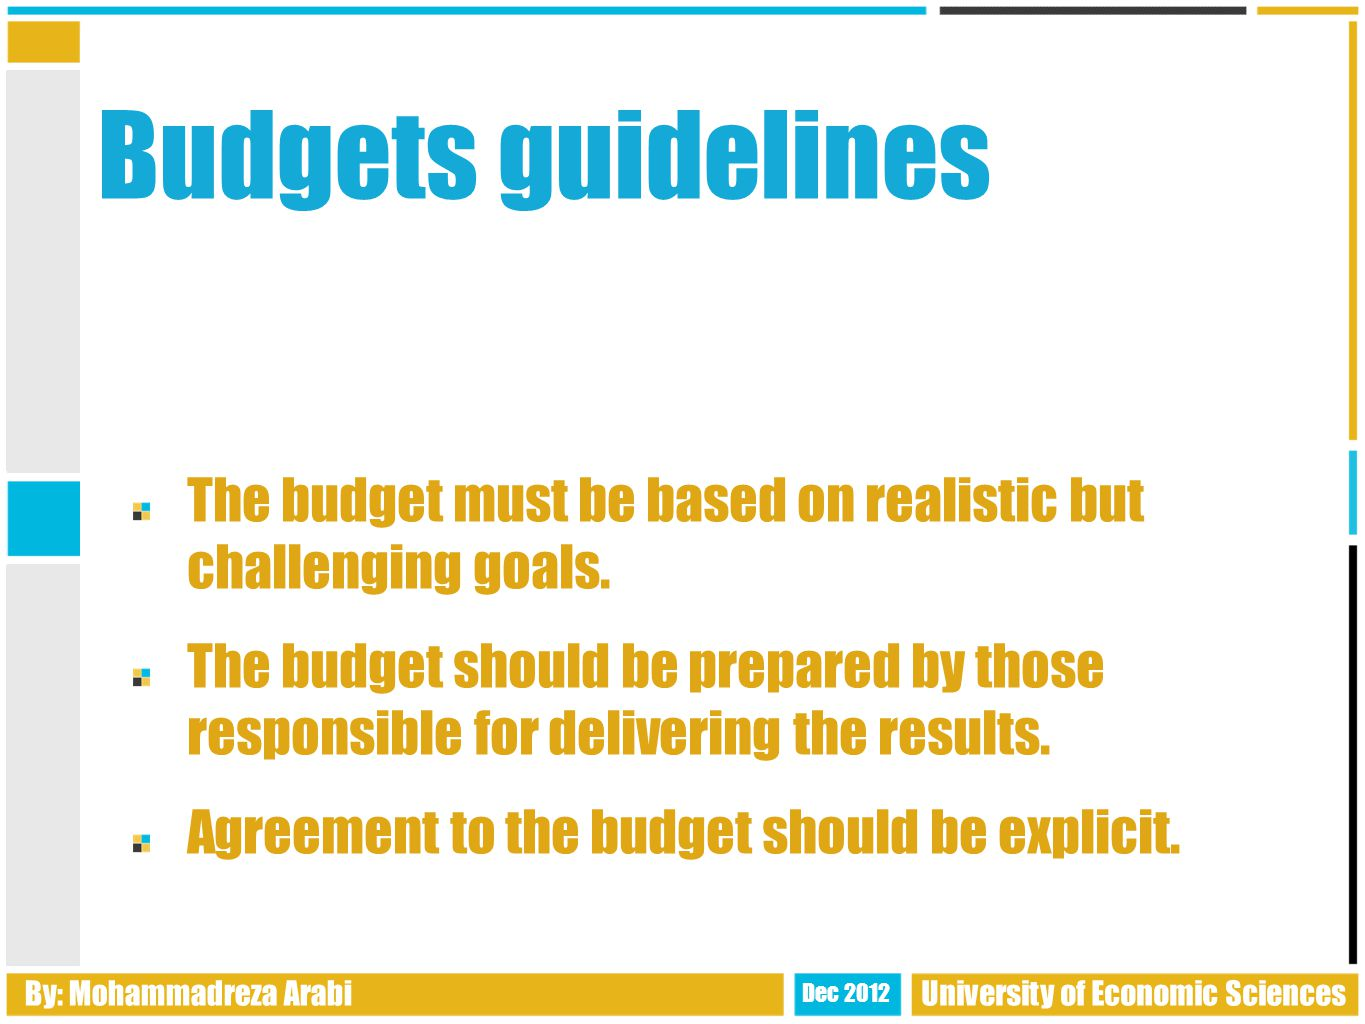 Budgets guidelines The budget must be based on realistic but challenging goals.